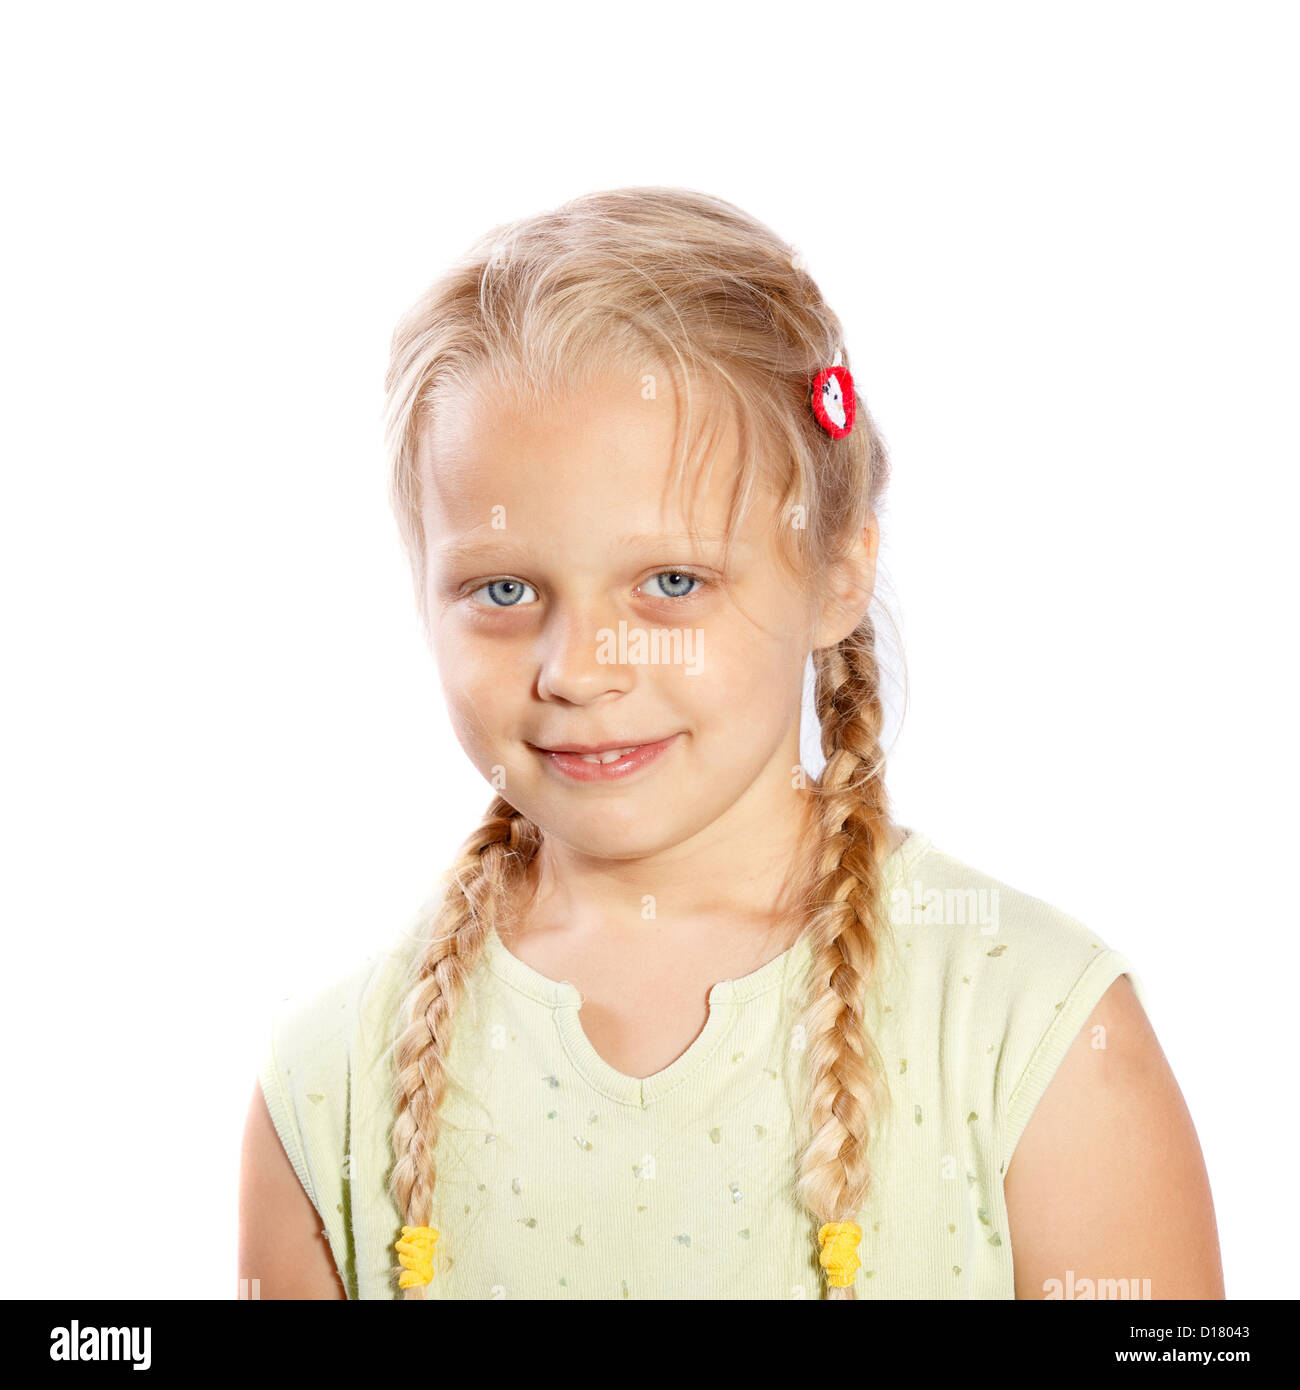 a little girl with long plaits on a white background - Stock Image